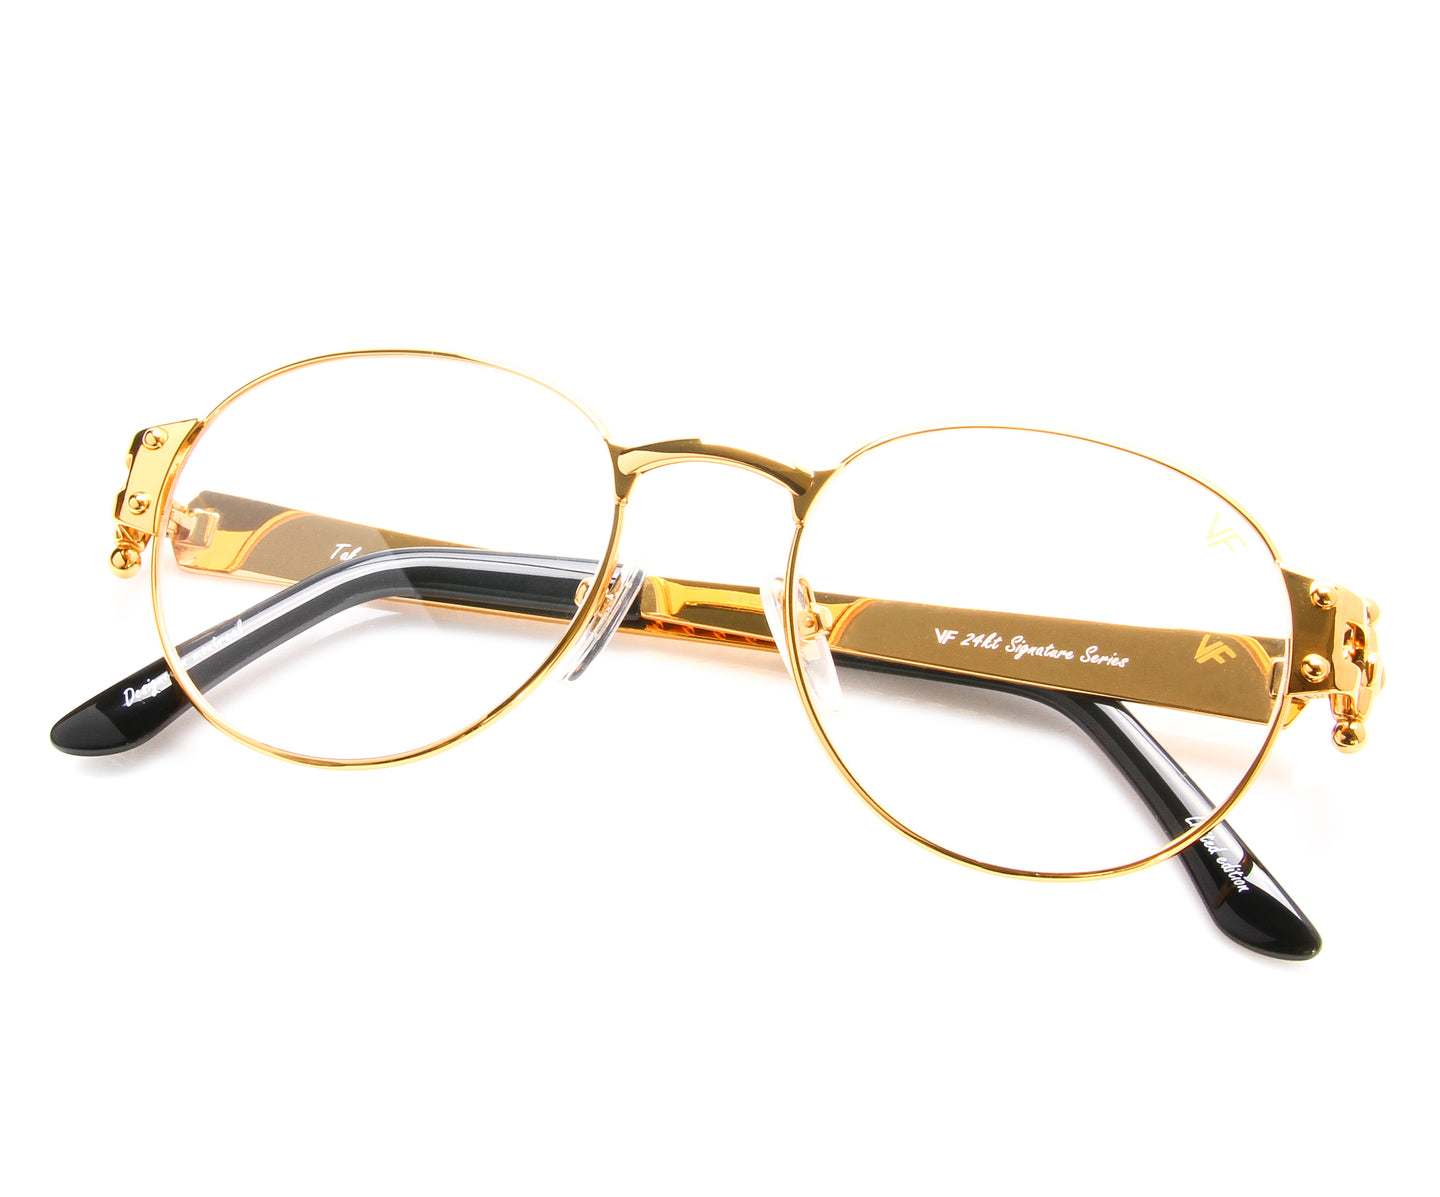 VF 1998 24KT Gold Masterpiece (Clear), VF Masterpiece , glasses frames, eyeglasses online, eyeglass frames, mens glasses, womens glasses, buy glasses online, designer eyeglasses, vintage sunglasses, retro sunglasses, vintage glasses, sunglass, eyeglass, glasses, lens, vintage frames company, vf